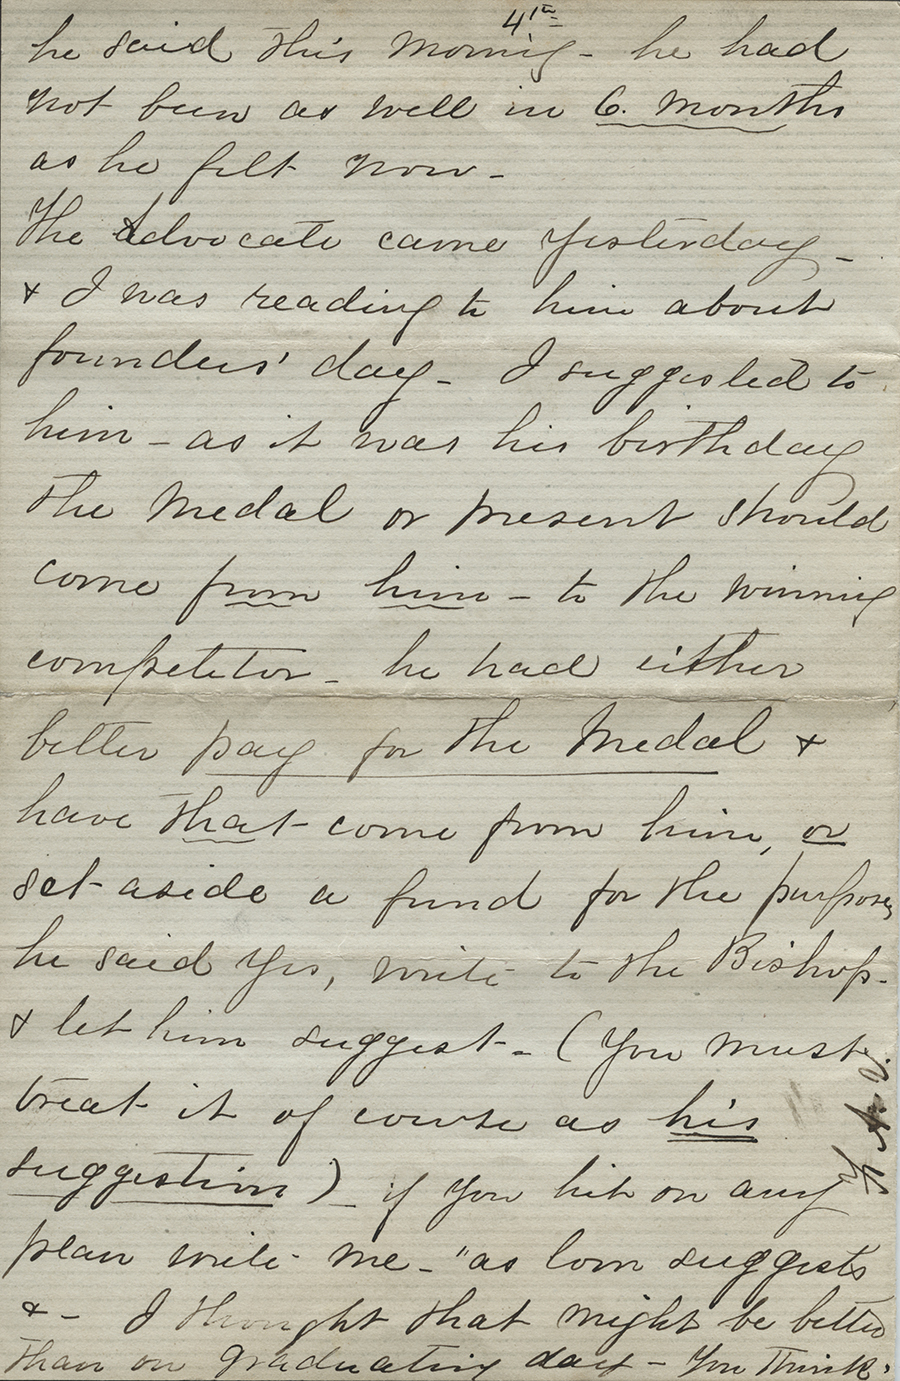 Letter, March 17, 1873